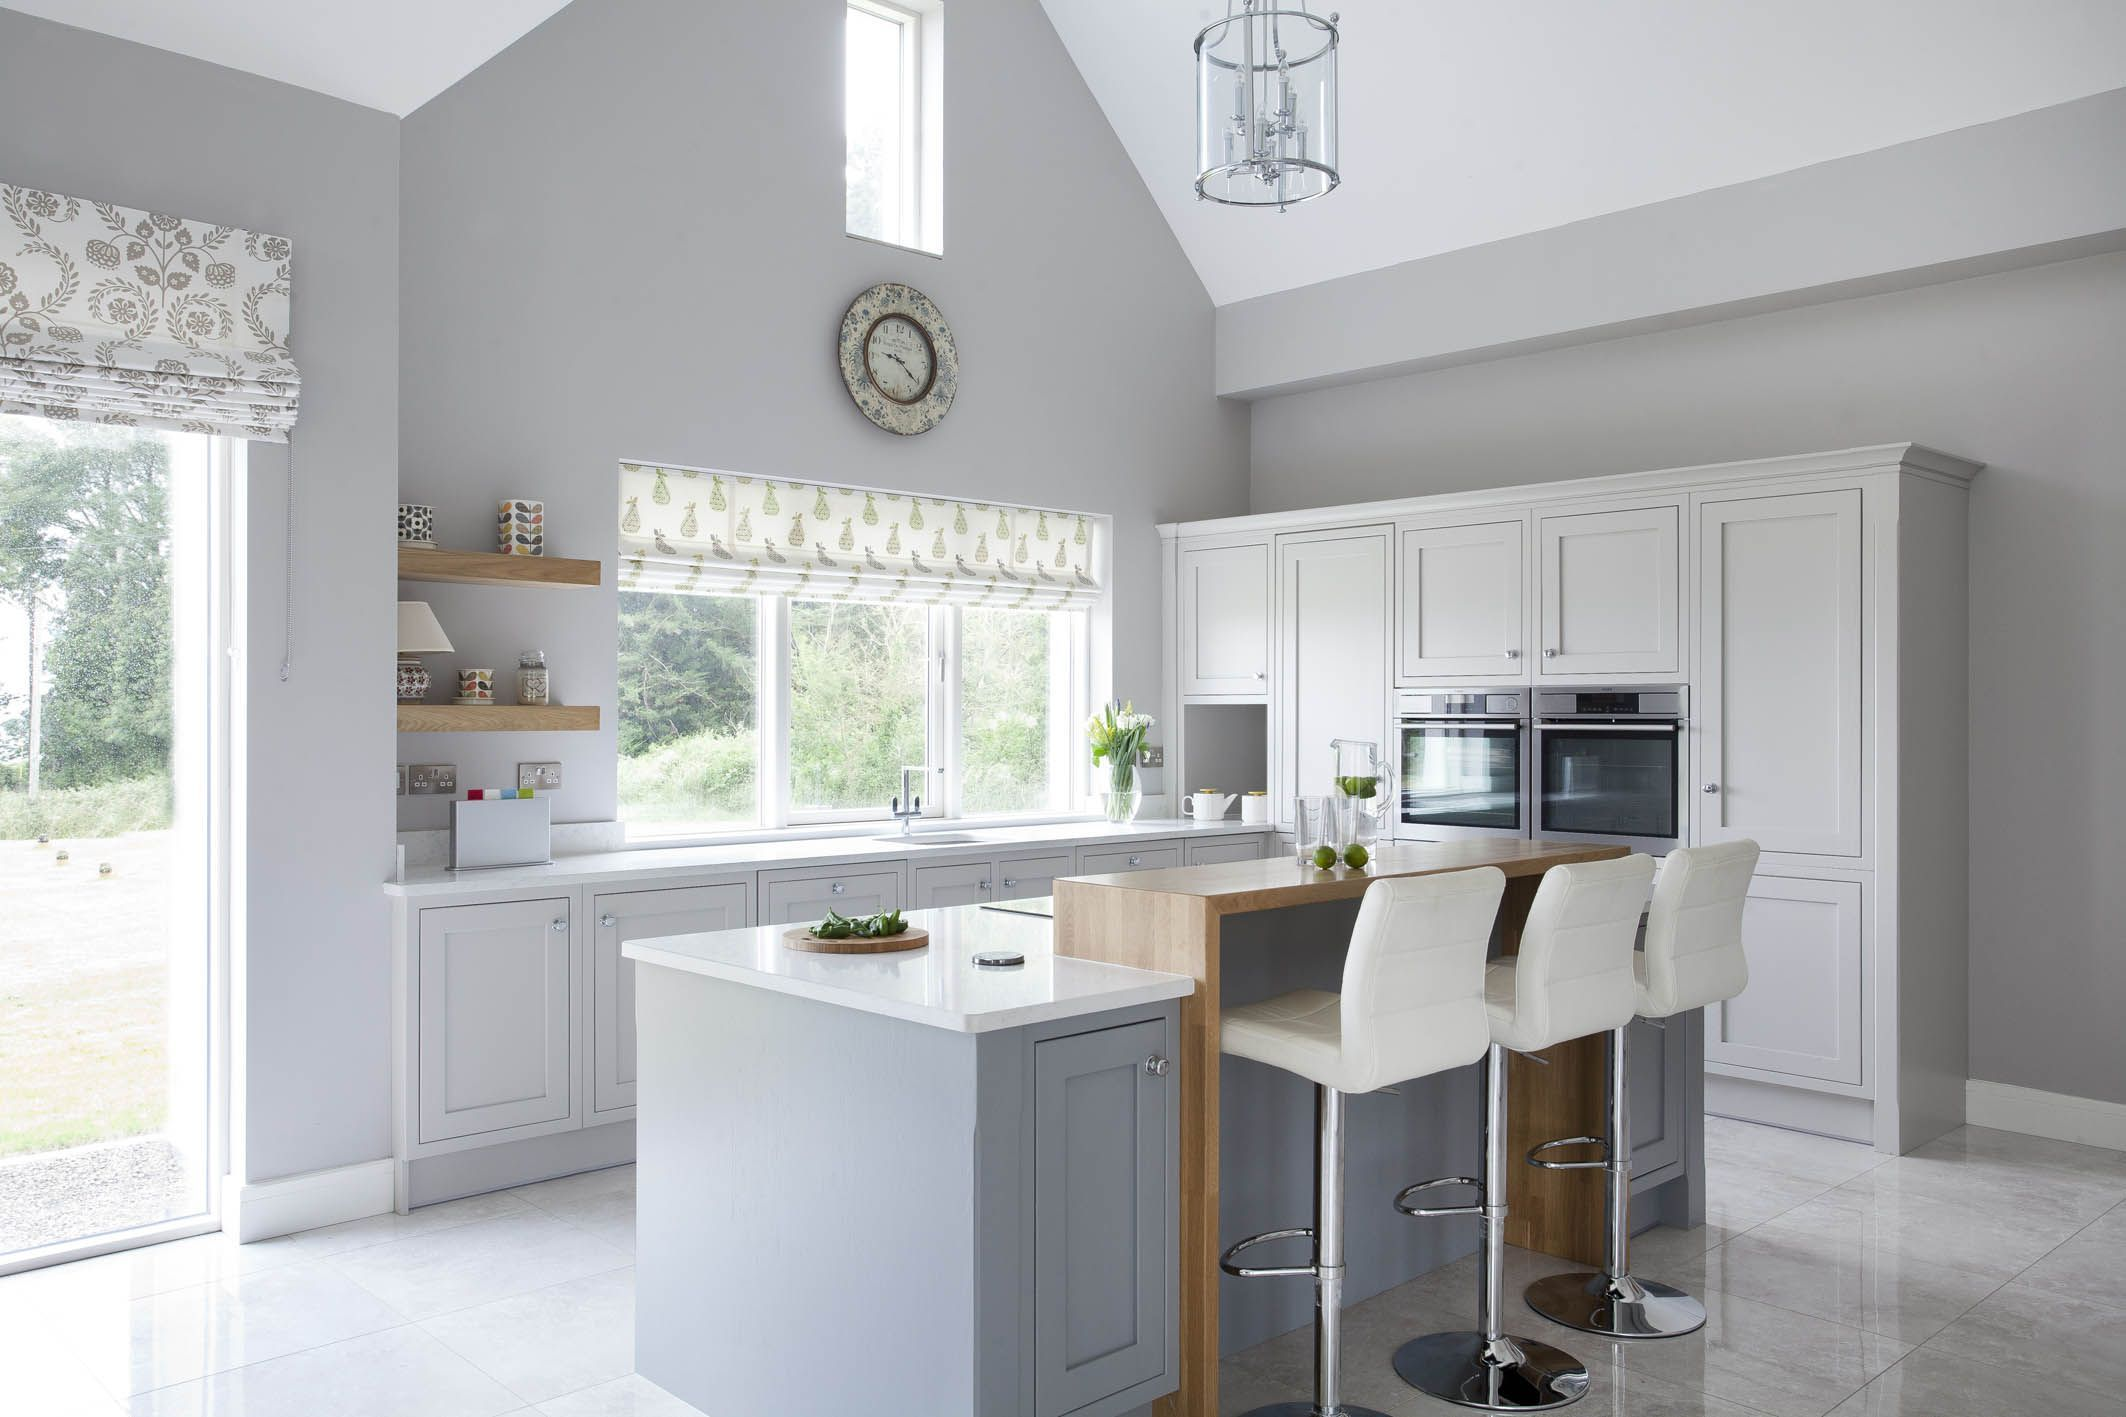 Bespoke kitchen – handpainted in Farrow & Ball Cornforth White with Manor House Gray on the island #cornforthwhitelivingroom Bespoke kitchen – handpainted in Farrow & Ball Cornforth White with Manor House Gray on the island